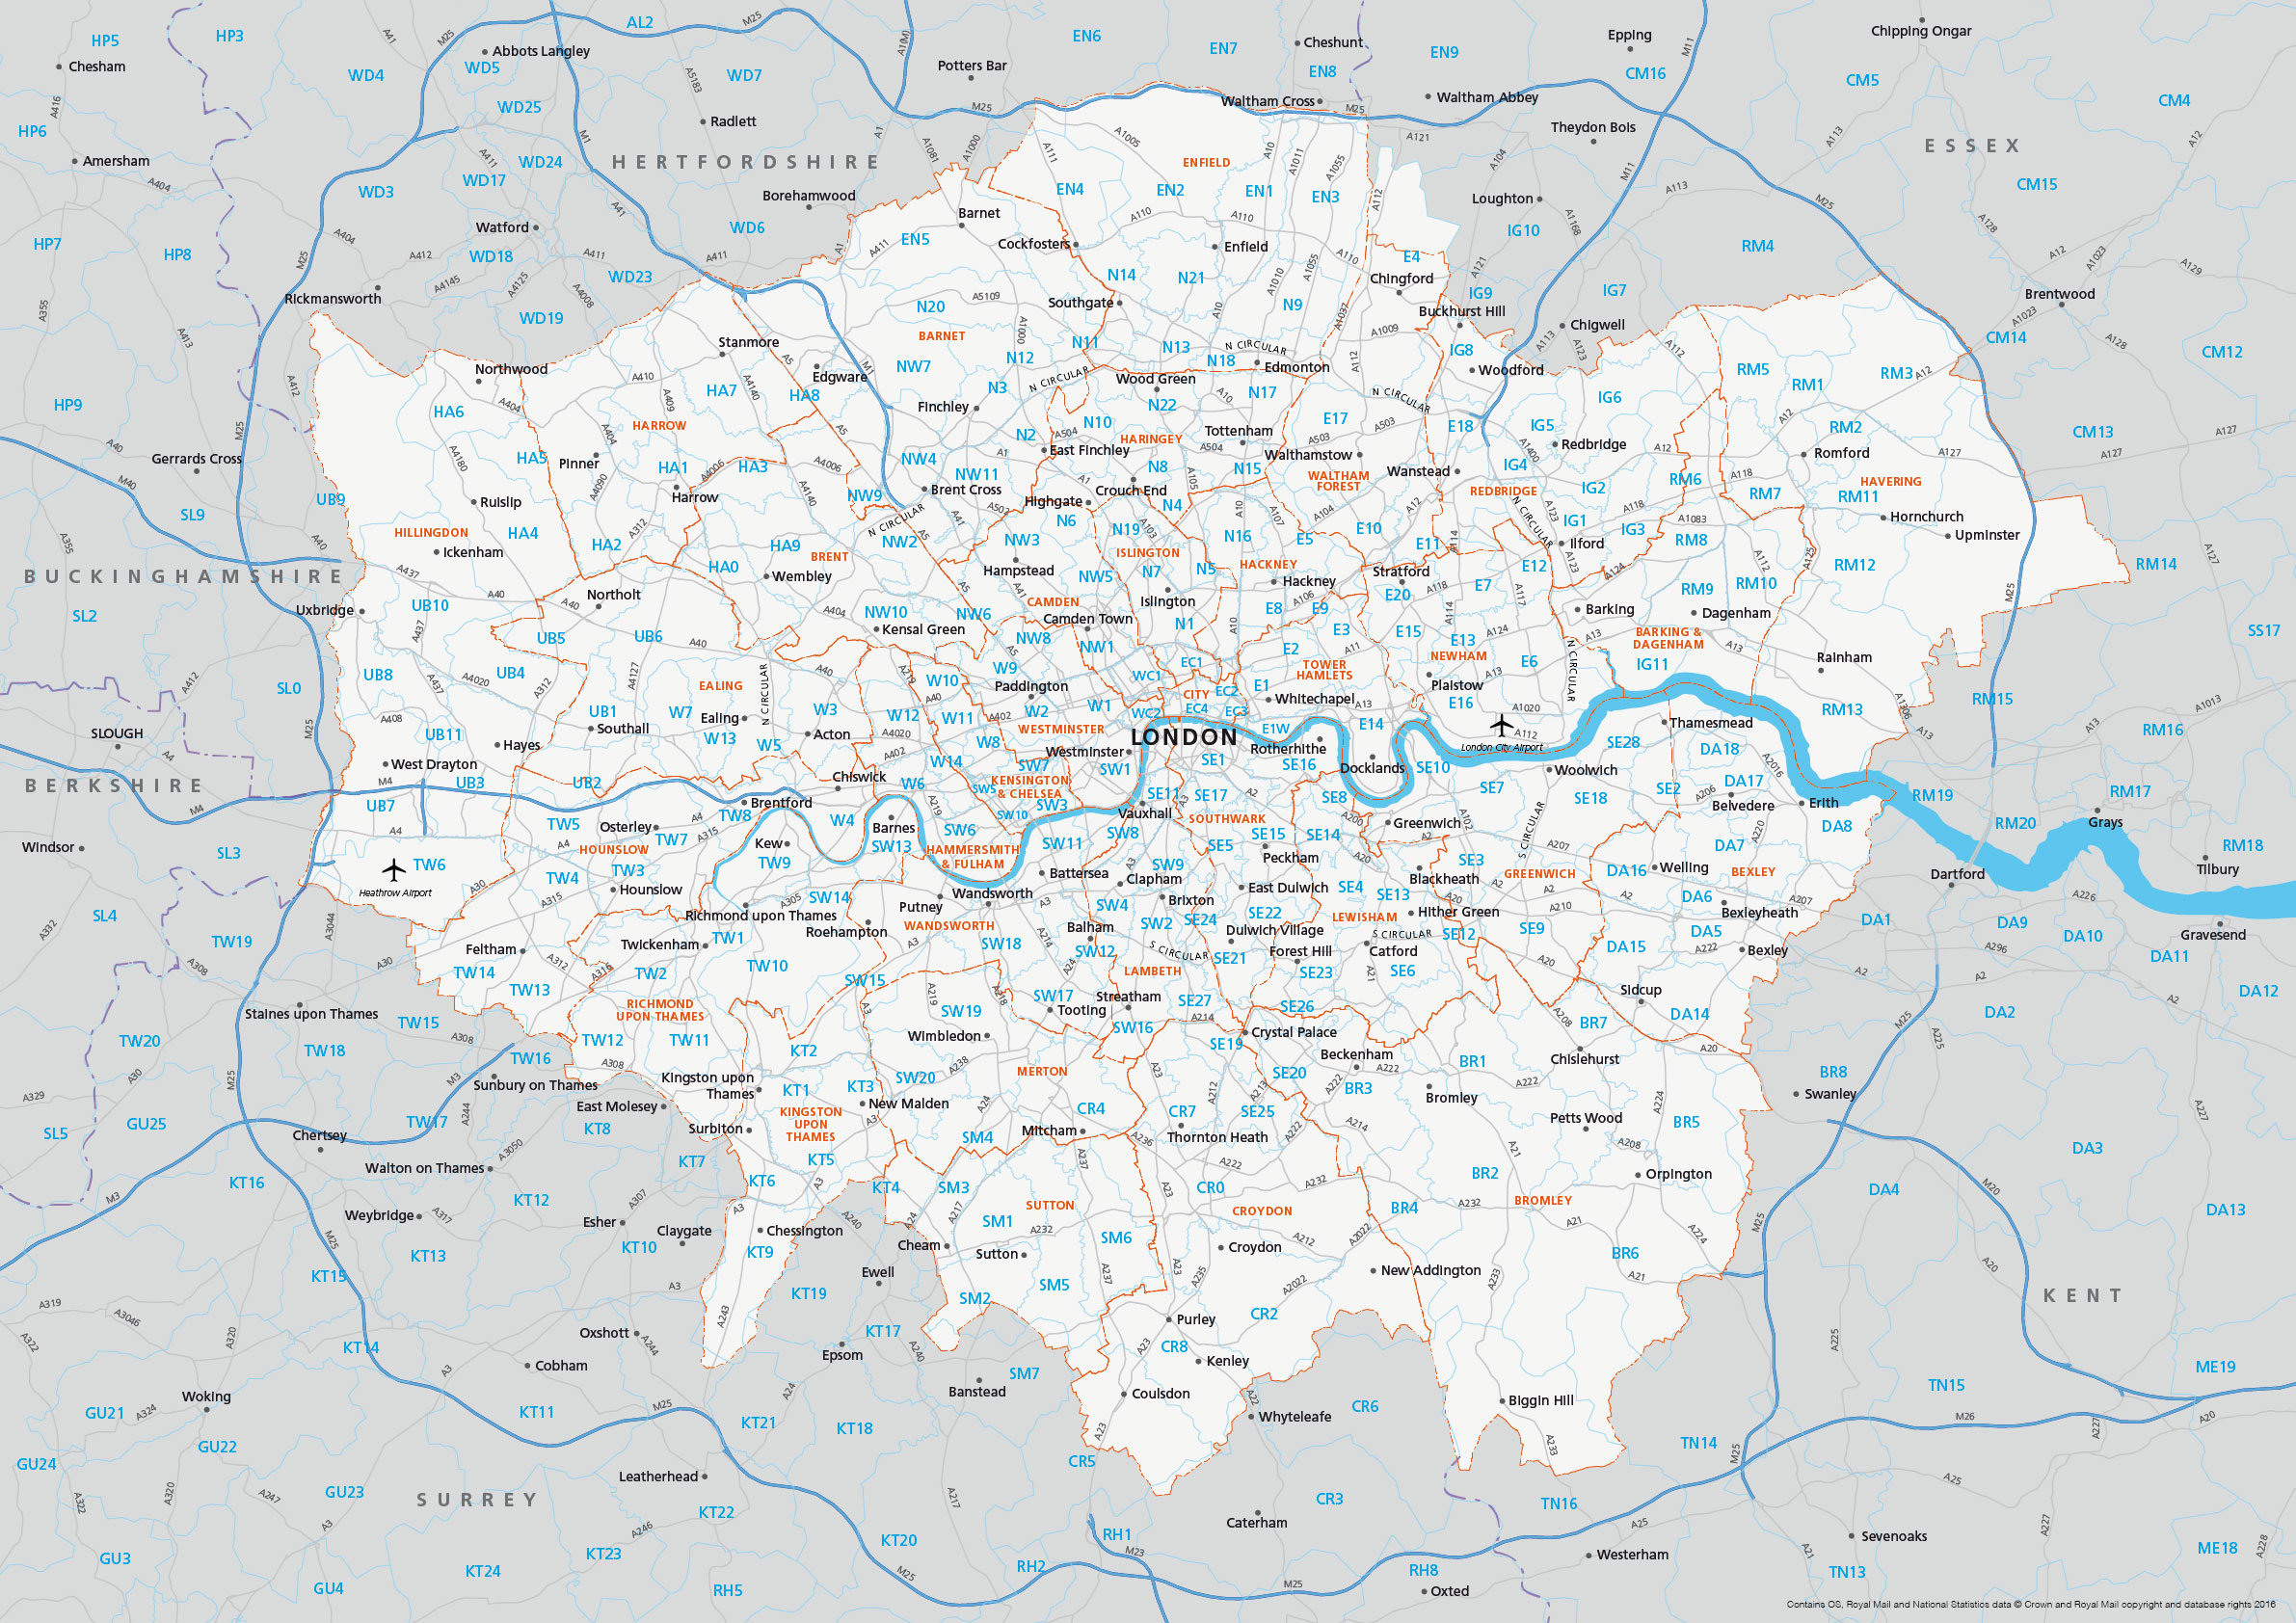 Map of Greater London postcode districts plus boroughs and